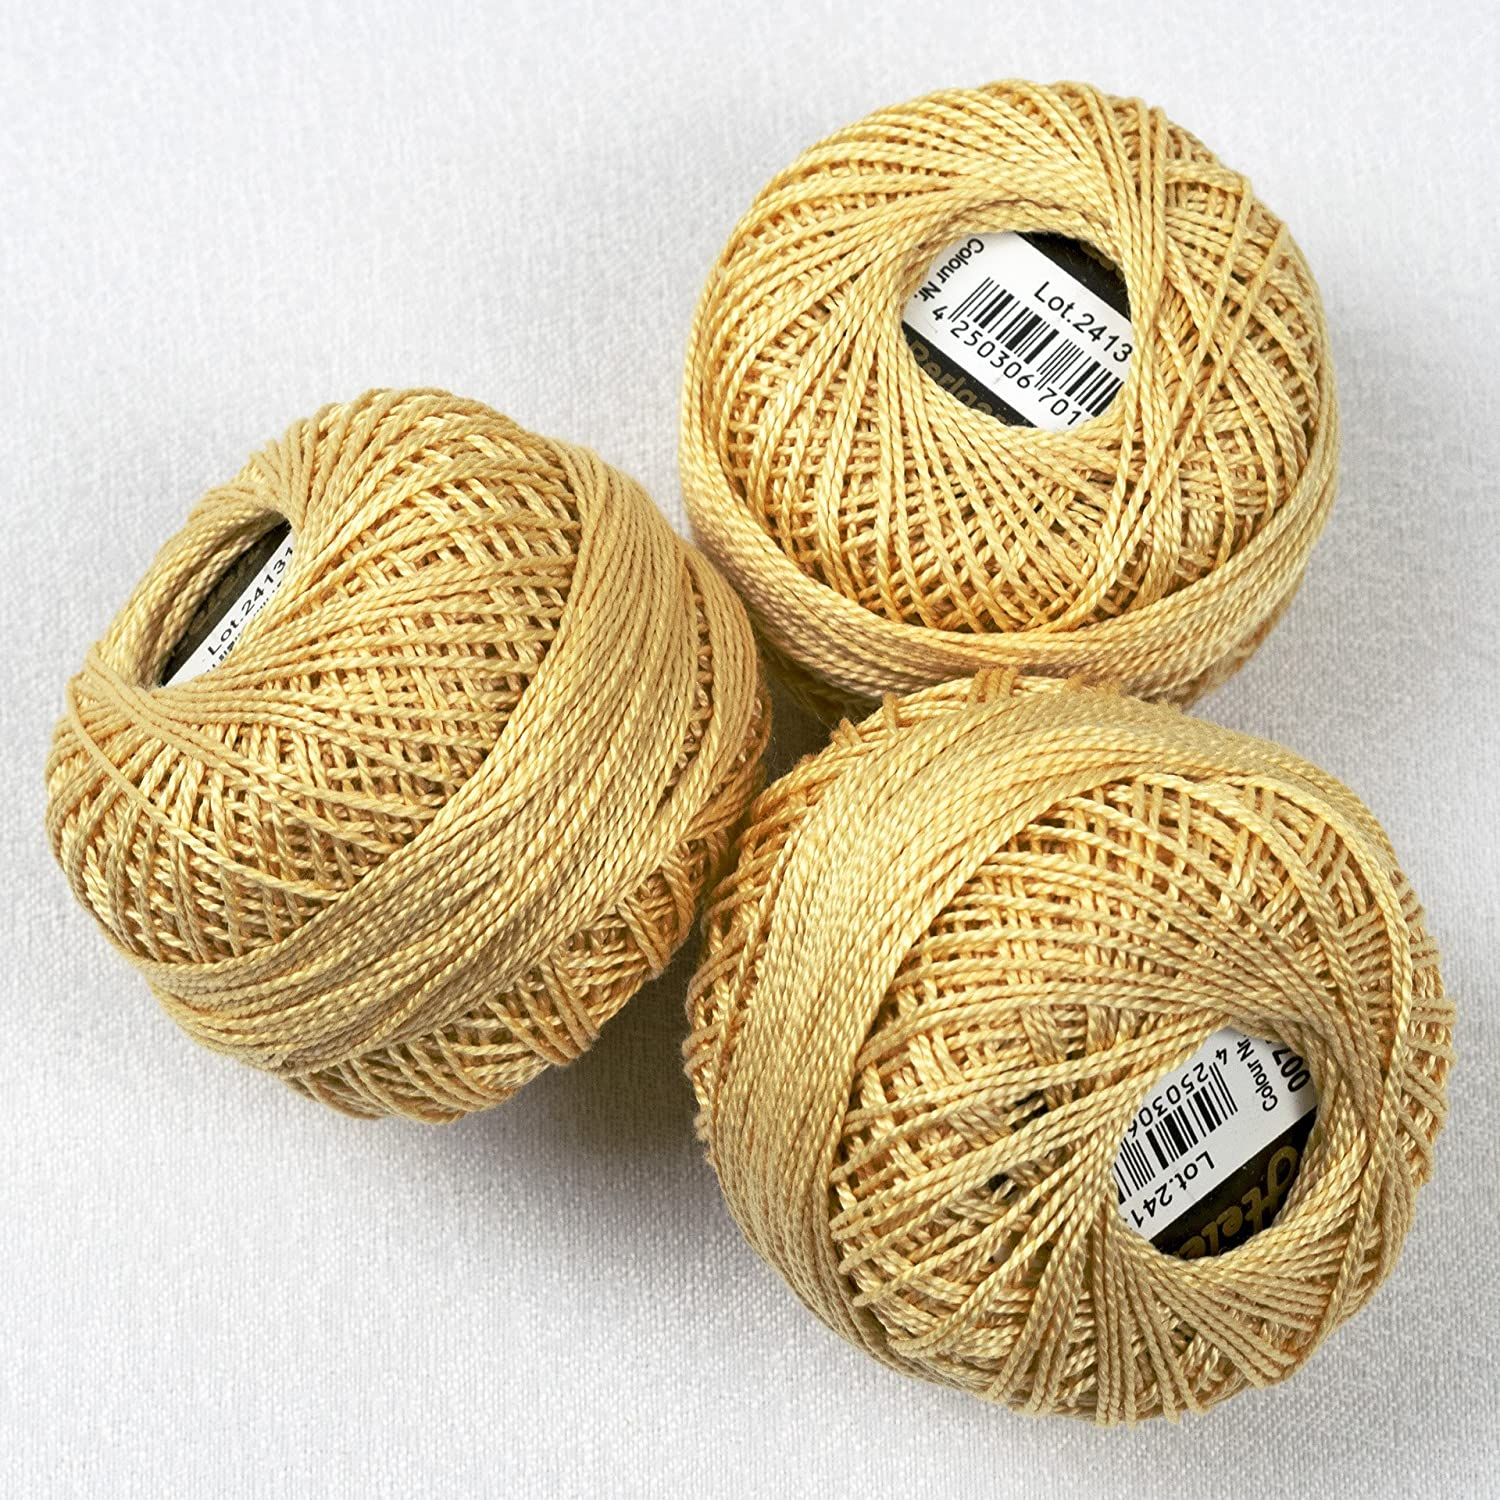 Flat Or Handl Fade-Resistant Mercerised Pearl Cotton/ /Perfect for Cross Stitch /High Quality/ Set of 3/ /100/% Cotton Embroidery Thread Stitch Cross Stitch = 3/Rolls of 10/g whether Seat/